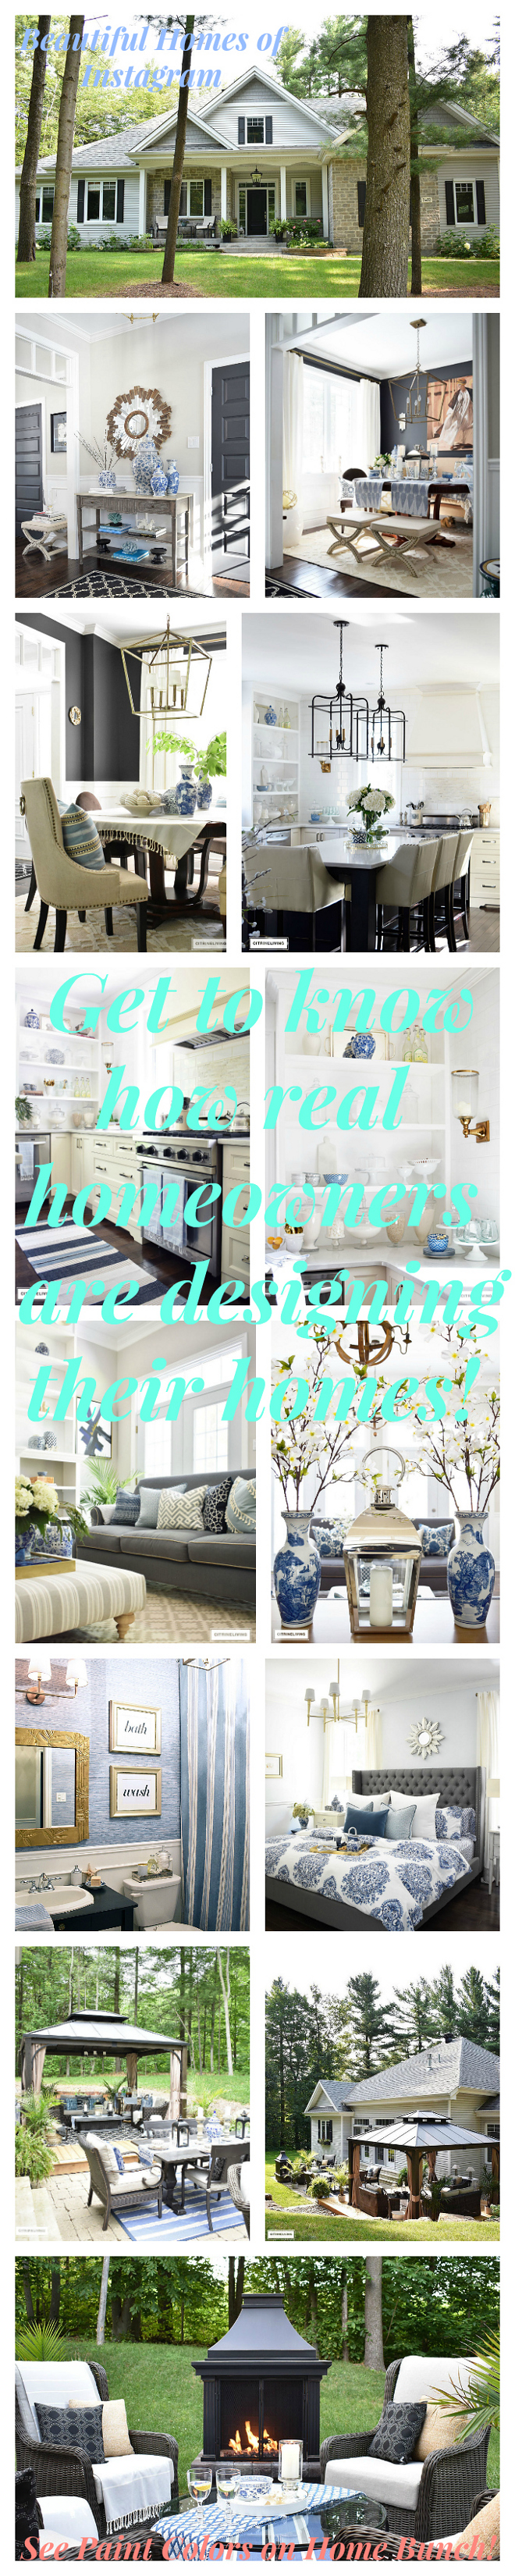 Beautiful Homes of Instagram. Inspiring and Beautiful Homes of Instagram Get to know how real homeowners are designing their homes! Every Sunday on HomeBunch